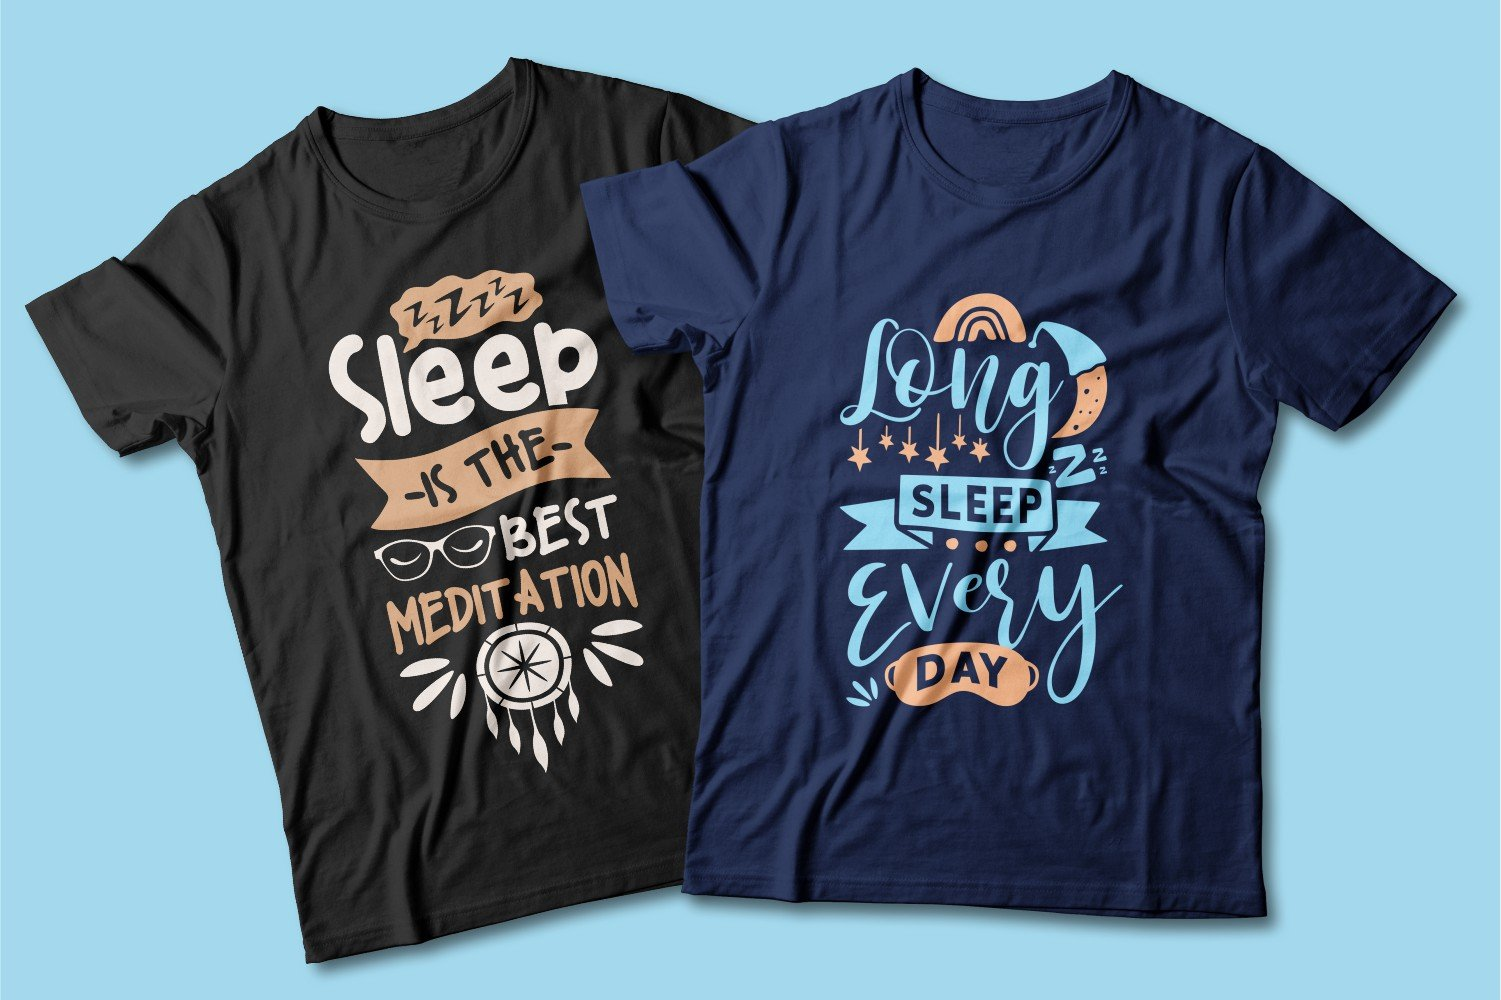 Blue and black T-shirts with short words about sleep in a beautiful font.